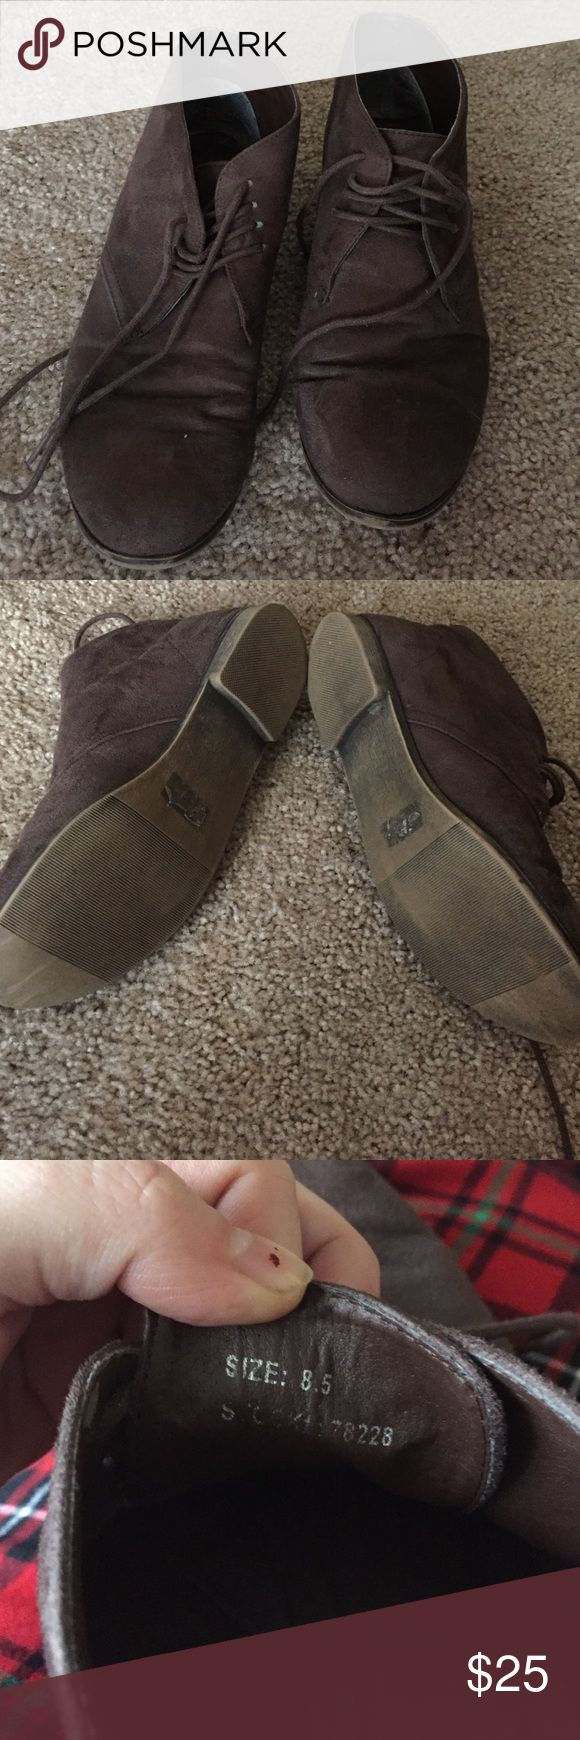 Maurice's brown chukka boots Chukka style Maurice's brown boots size 8.5 barely worn. Maurices Shoes Ankle Boots & Booties